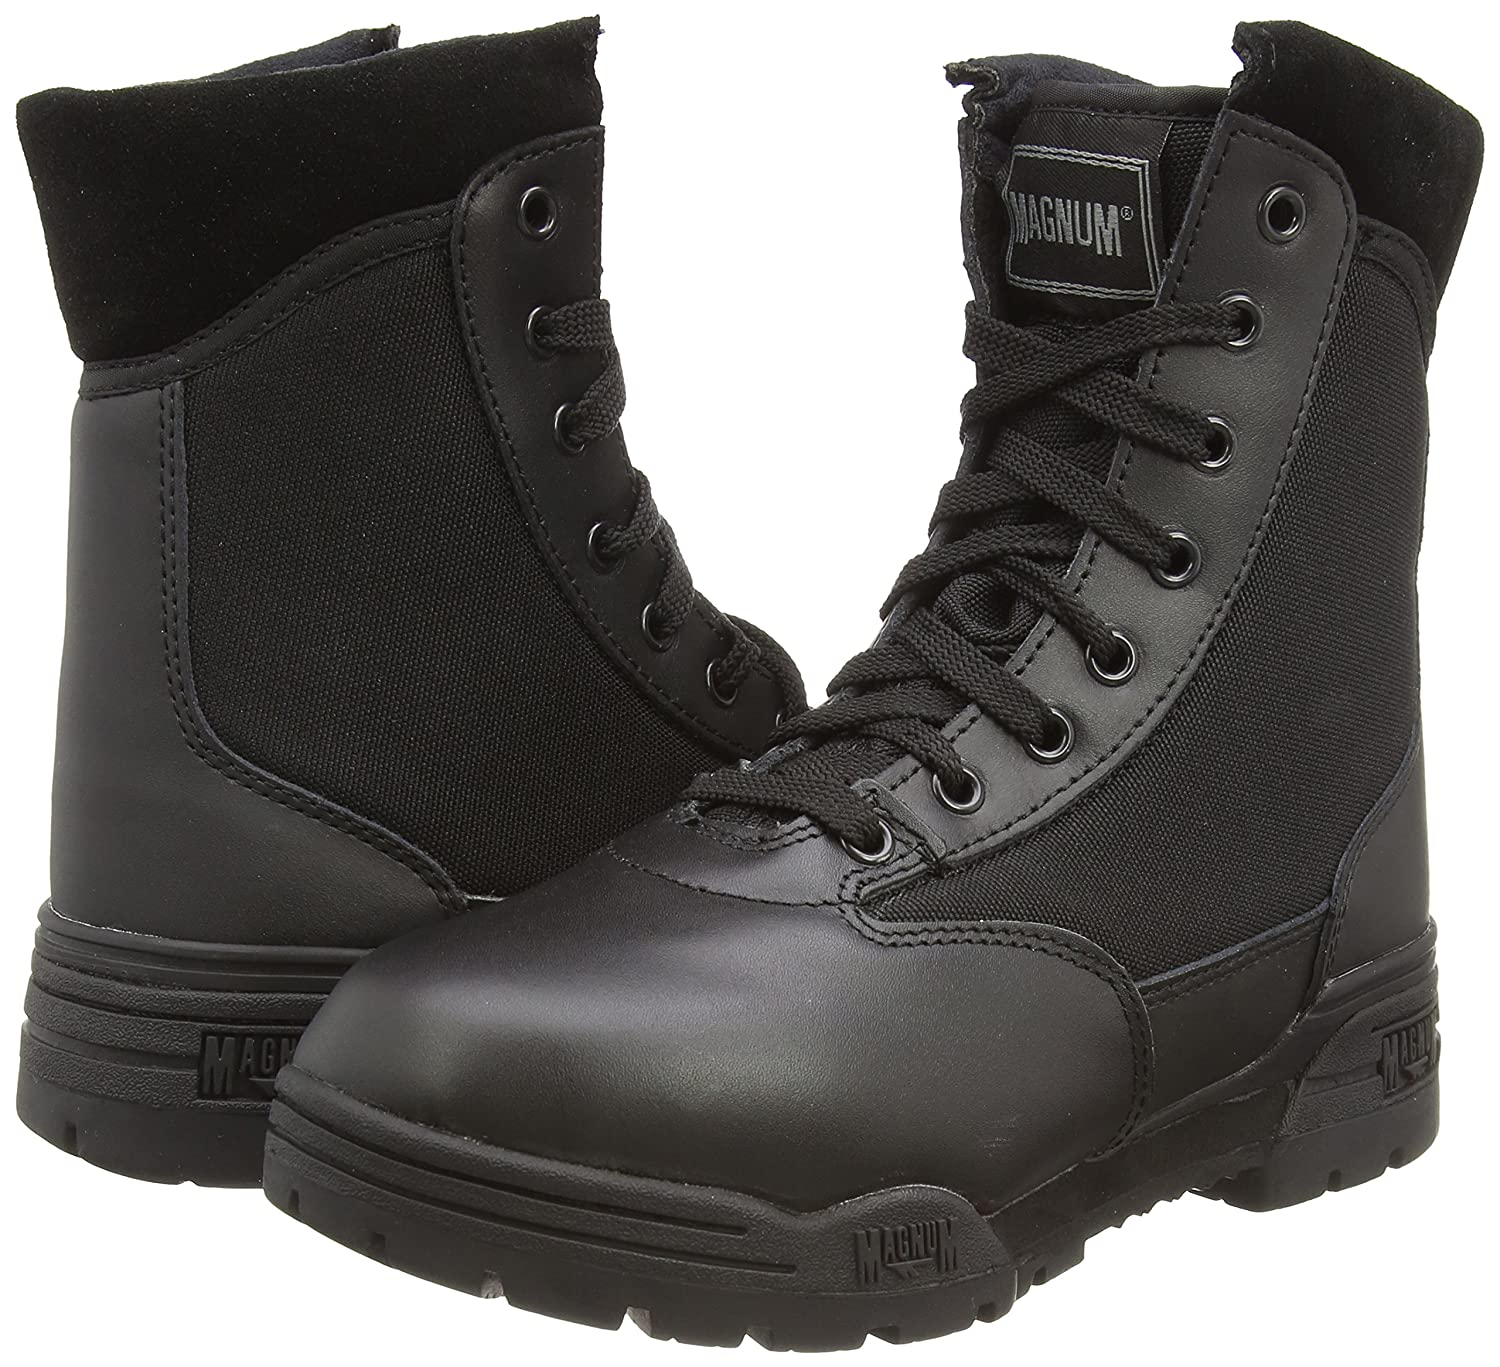 beautiful design popular style purchase authentic Magnum Classic, Unisex Adults' Boots